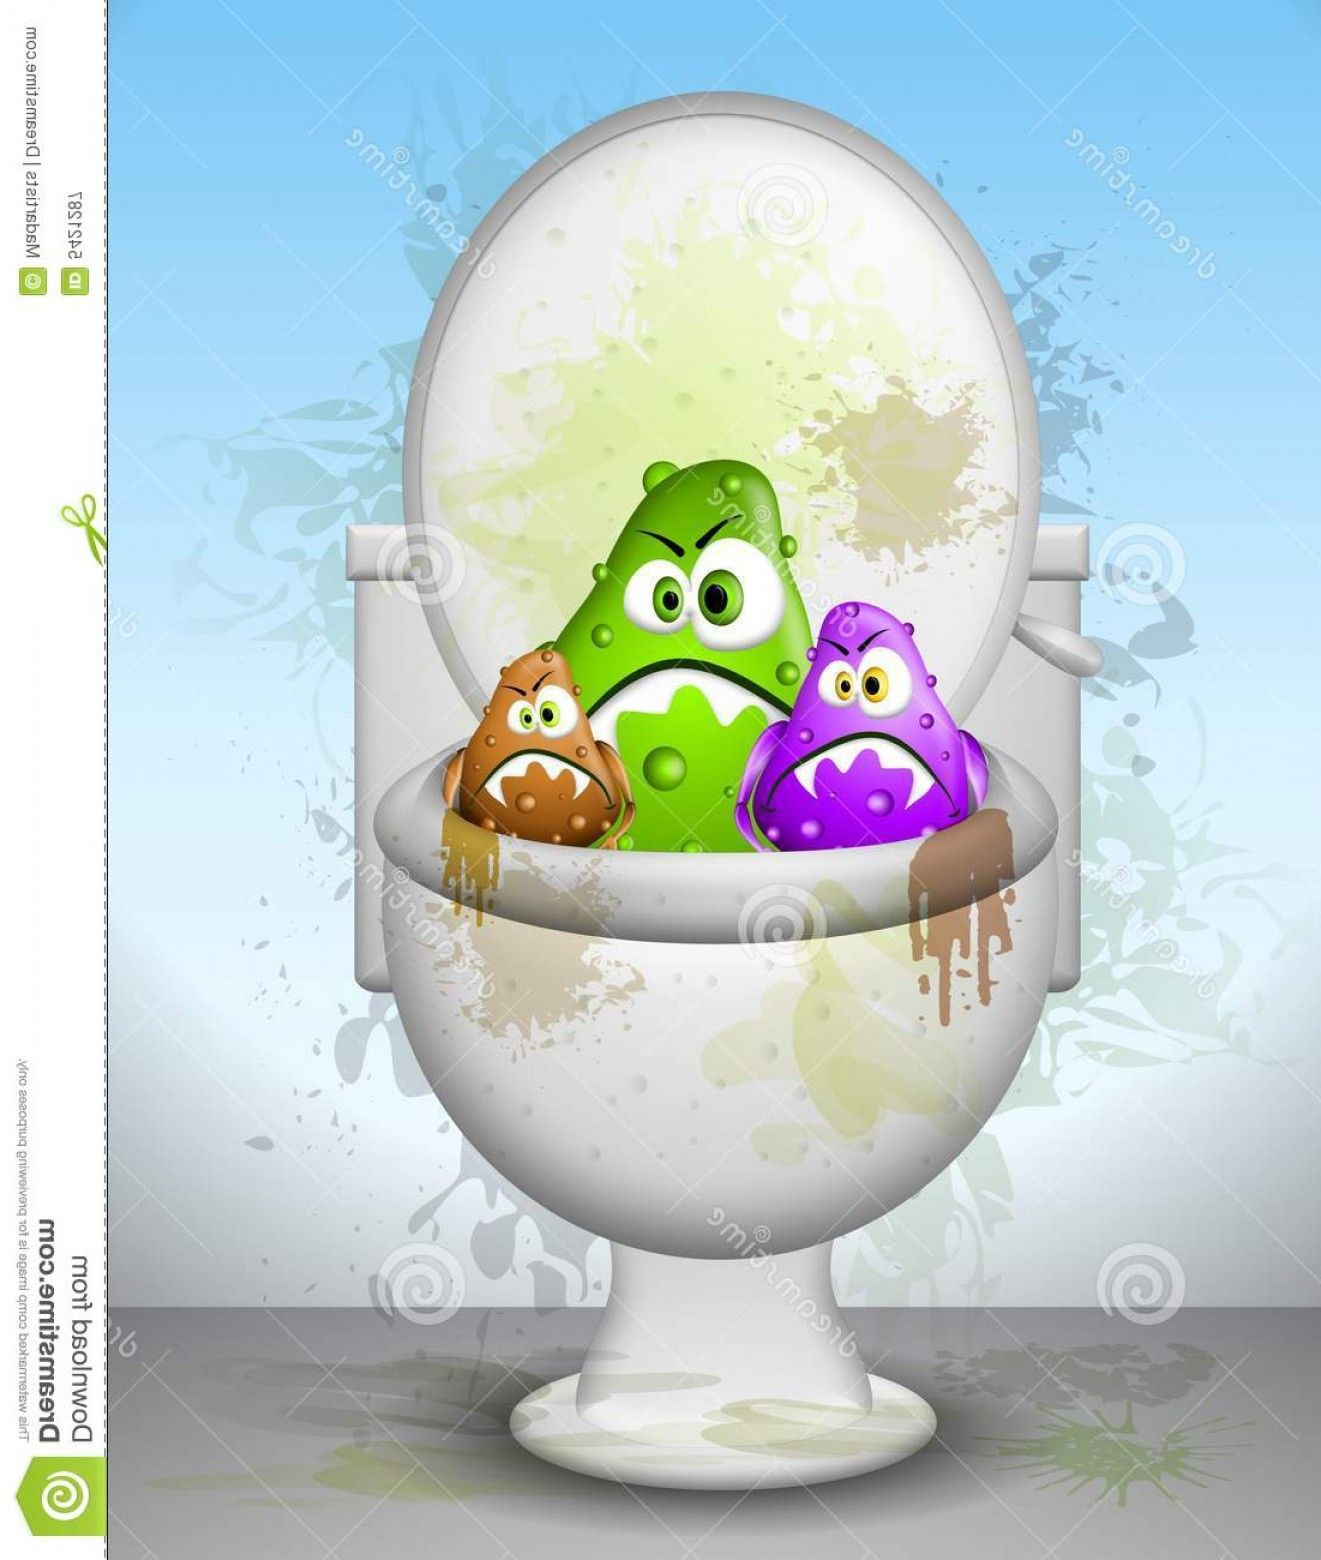 Cartoons Dirty Bathrooms: Royalty Free Stock Photography Ugly Dirty.